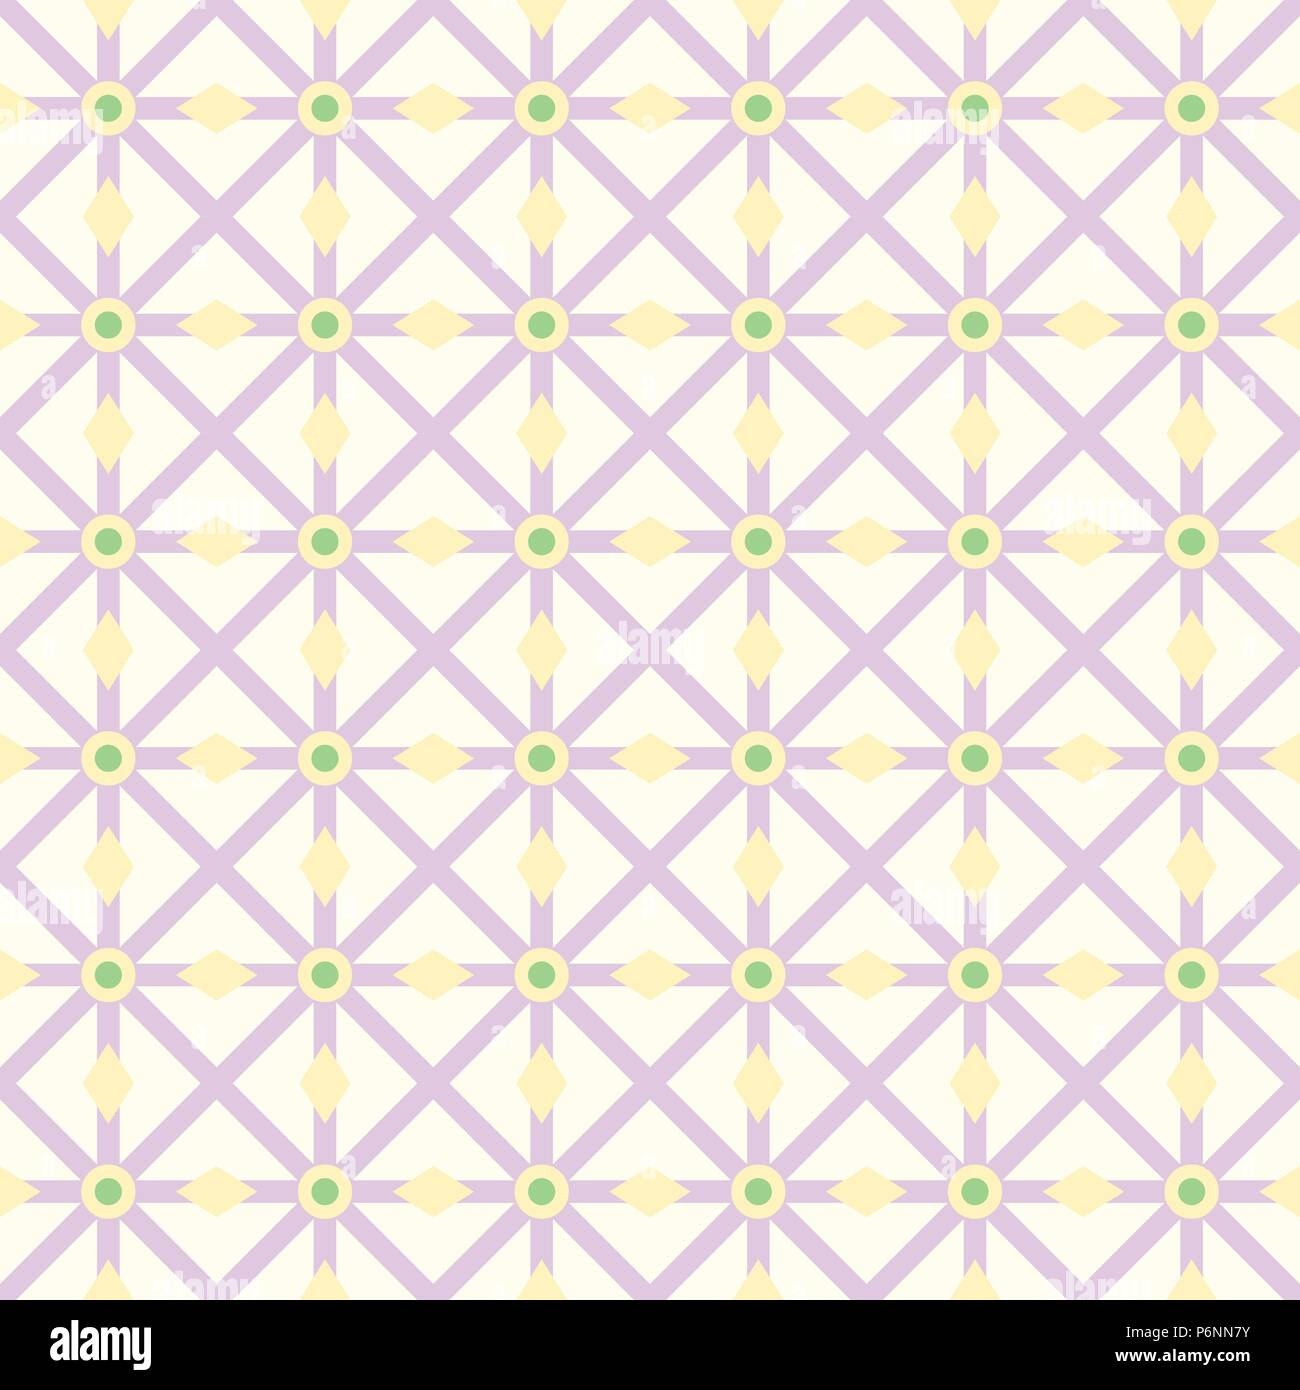 Purple asterisk or crossed line and circle and triangle seamless pattern. Abstract and classic pattern style for design - Stock Vector